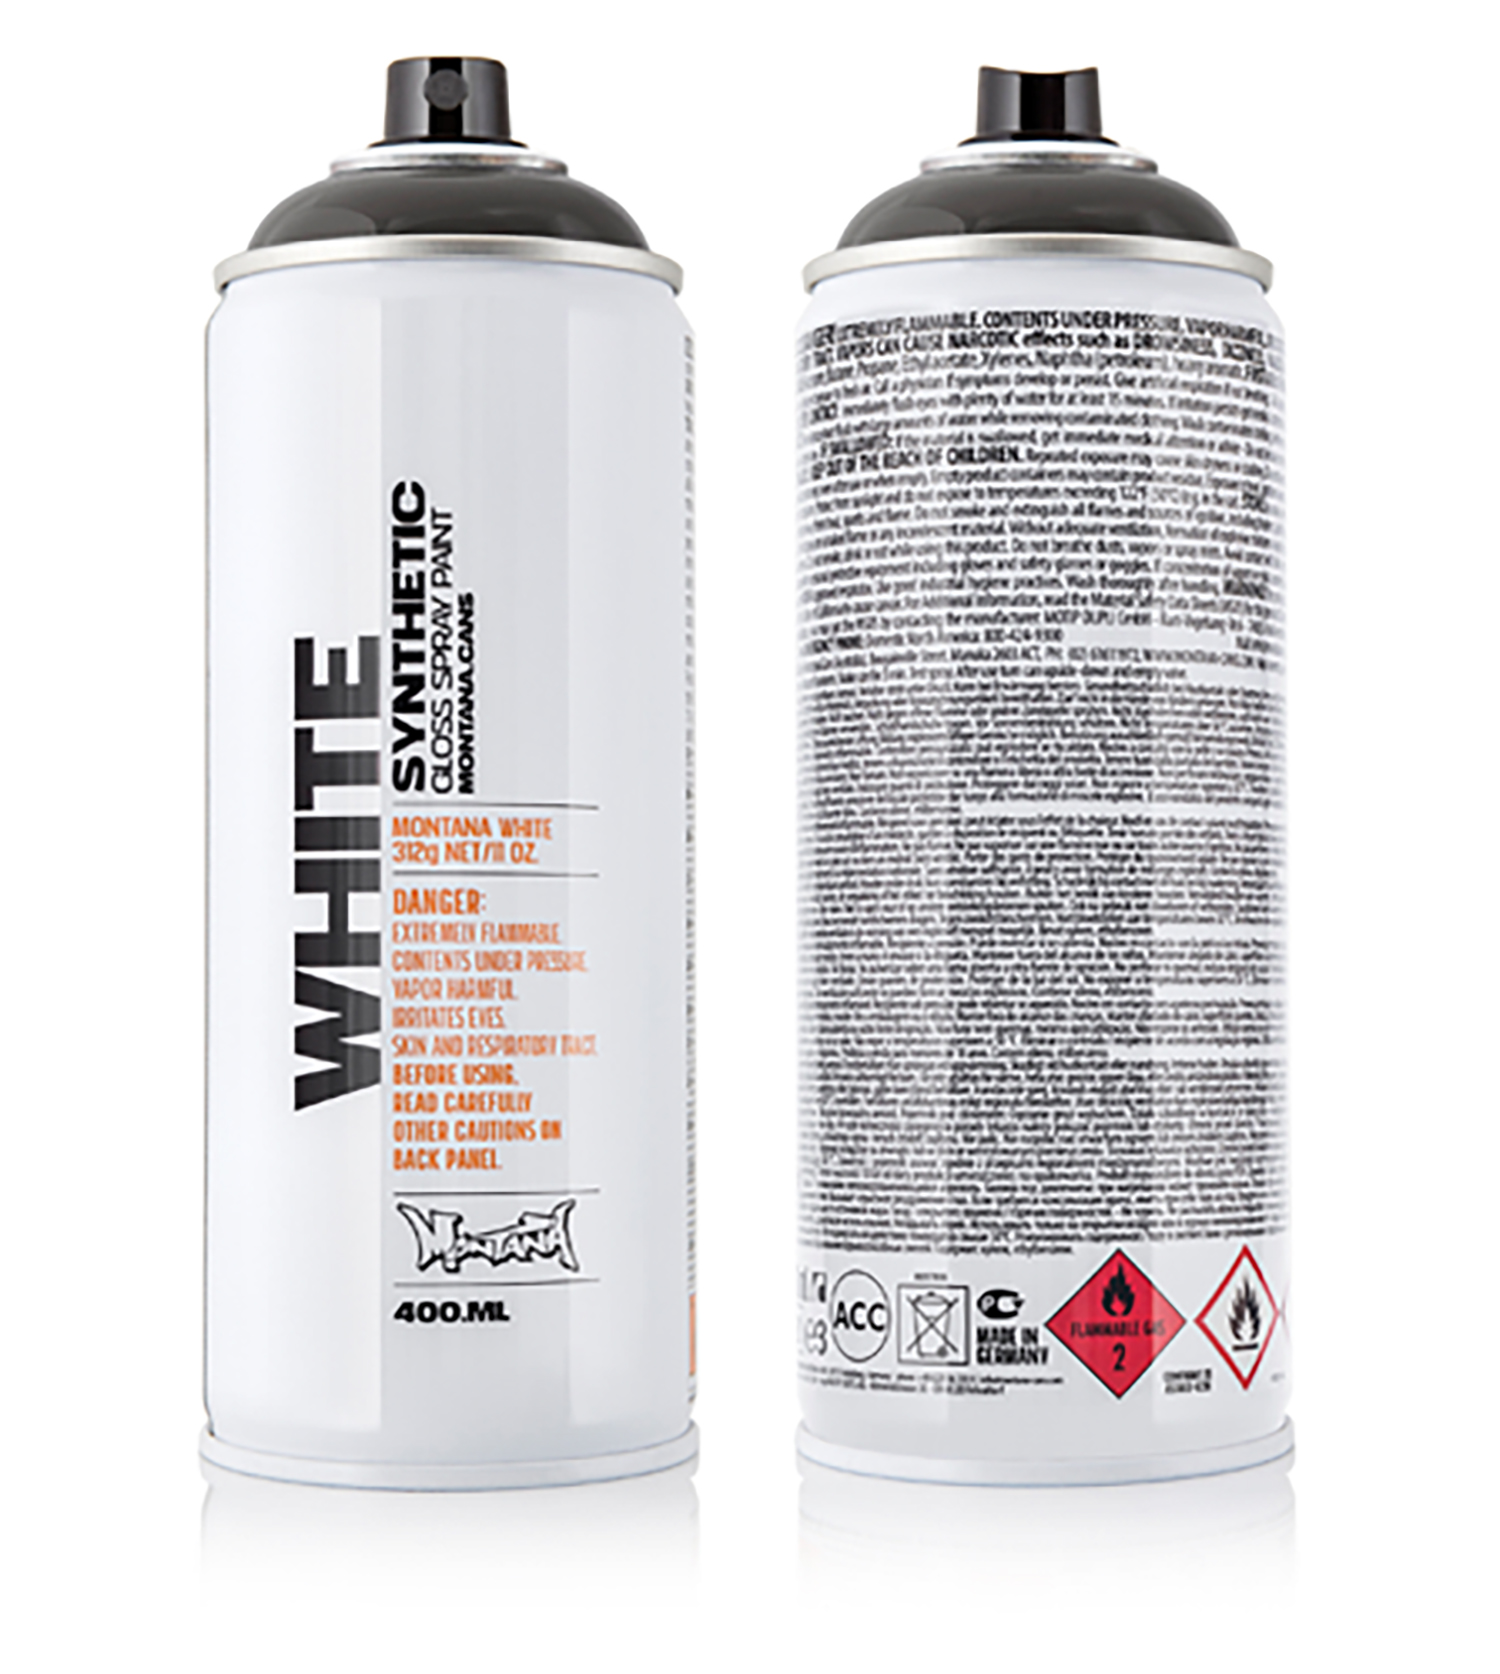 MONTANA-WHITE-SPRAY-400ML-7070